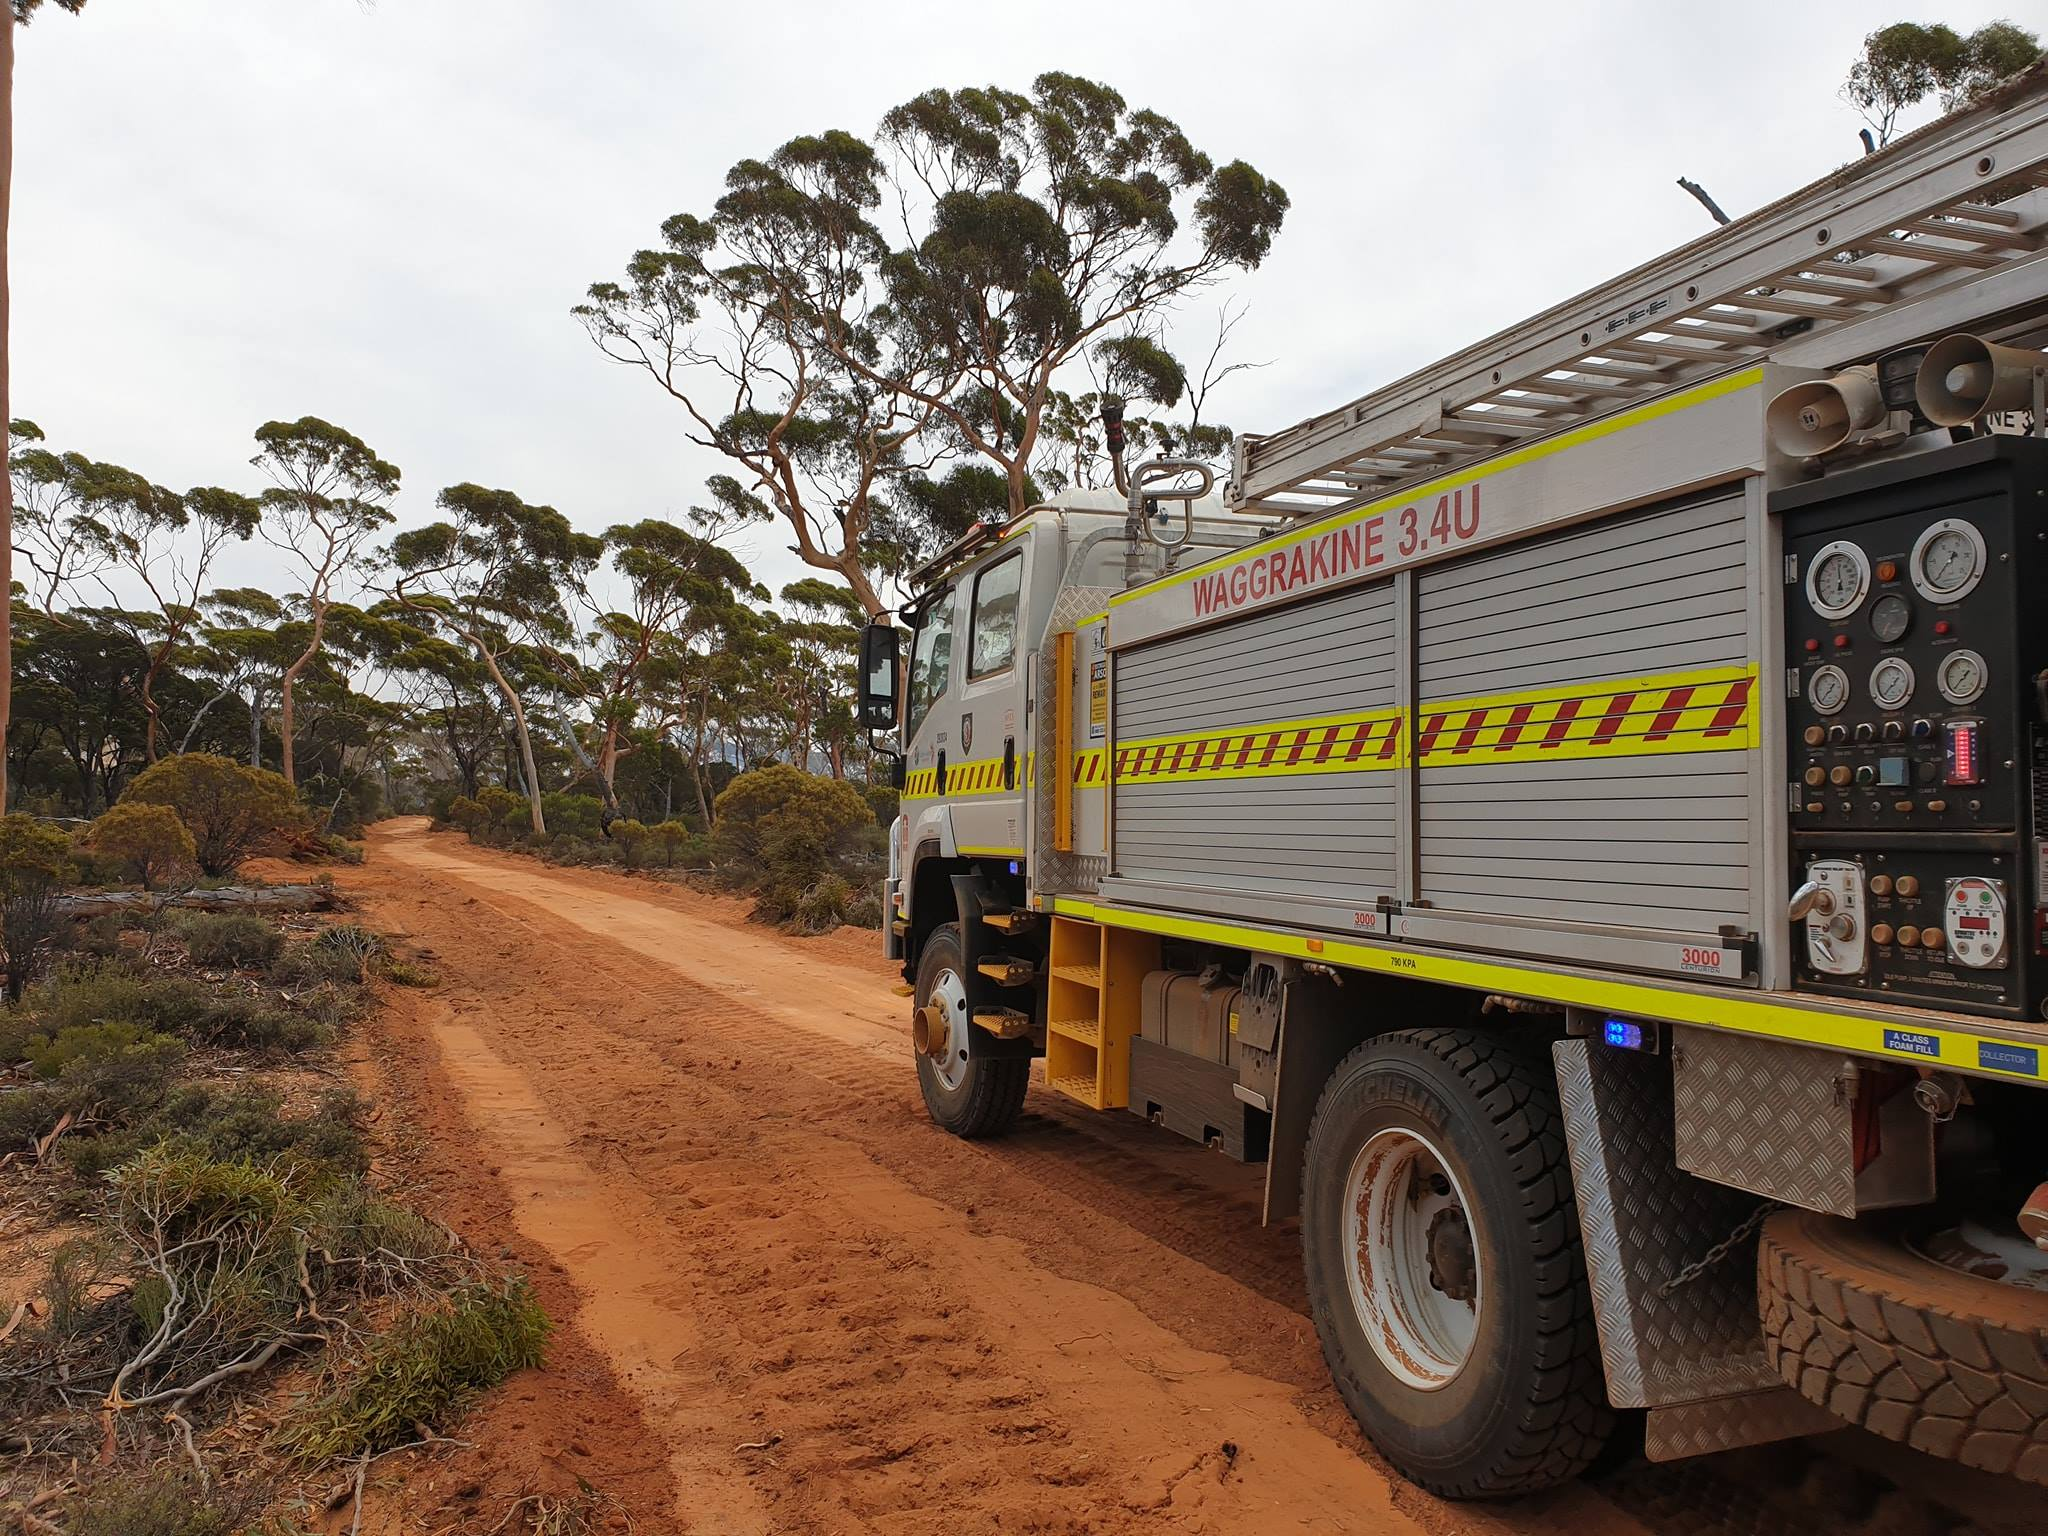 Waggrakine Volunteer Bushfire Brigade appliance in Norseman Western Australia March 2019